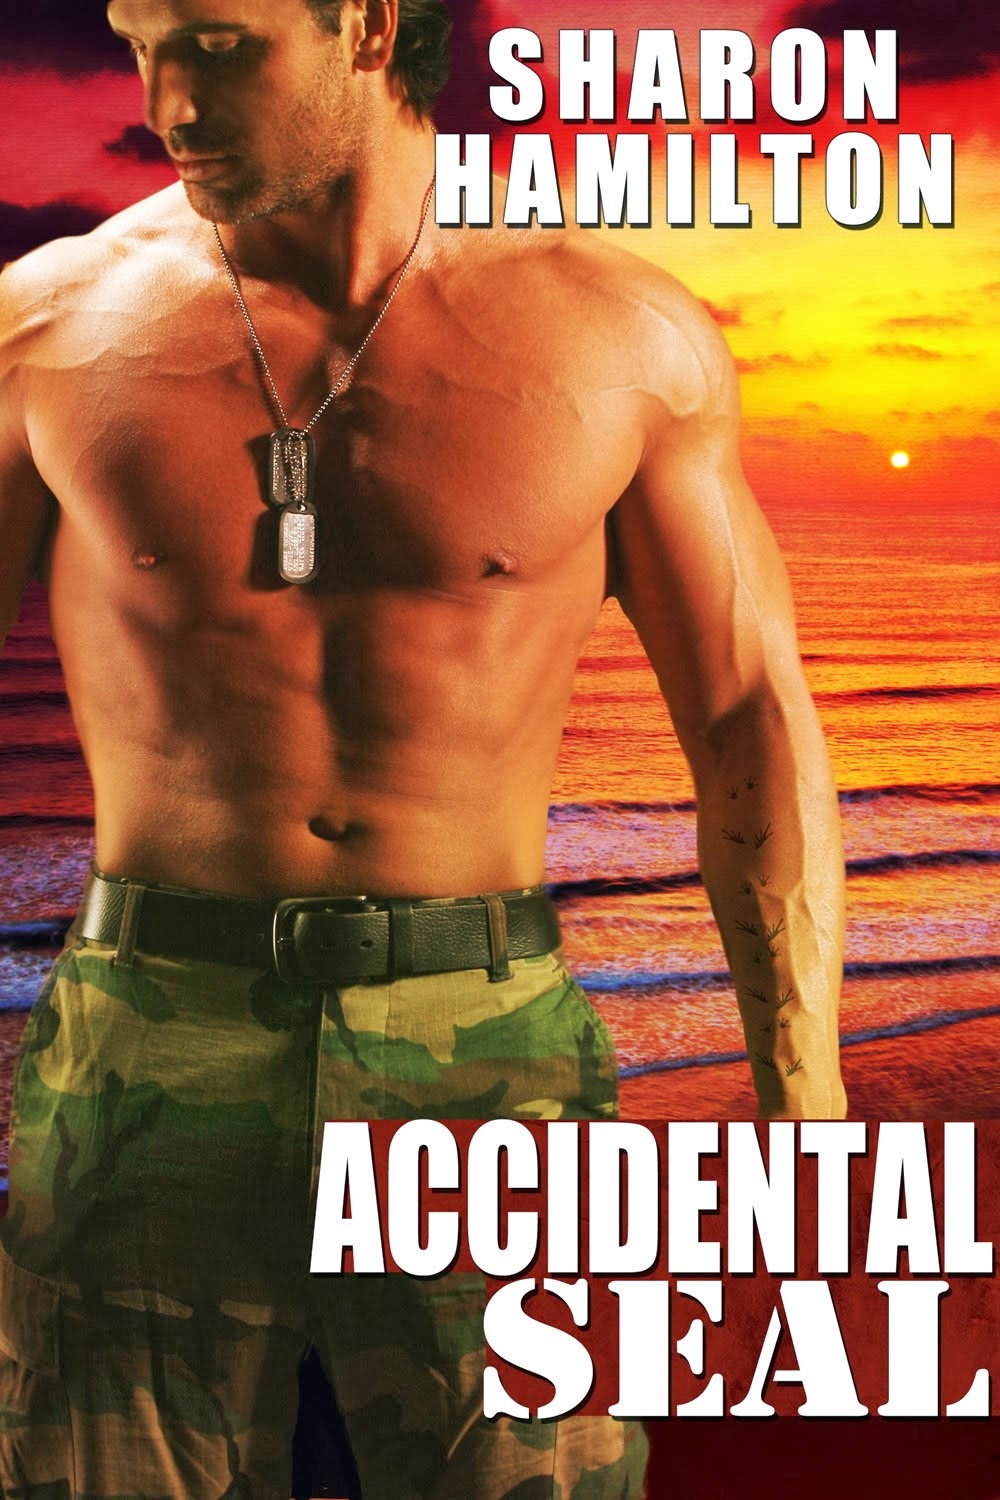 Accidental SEAL on Audio Now!